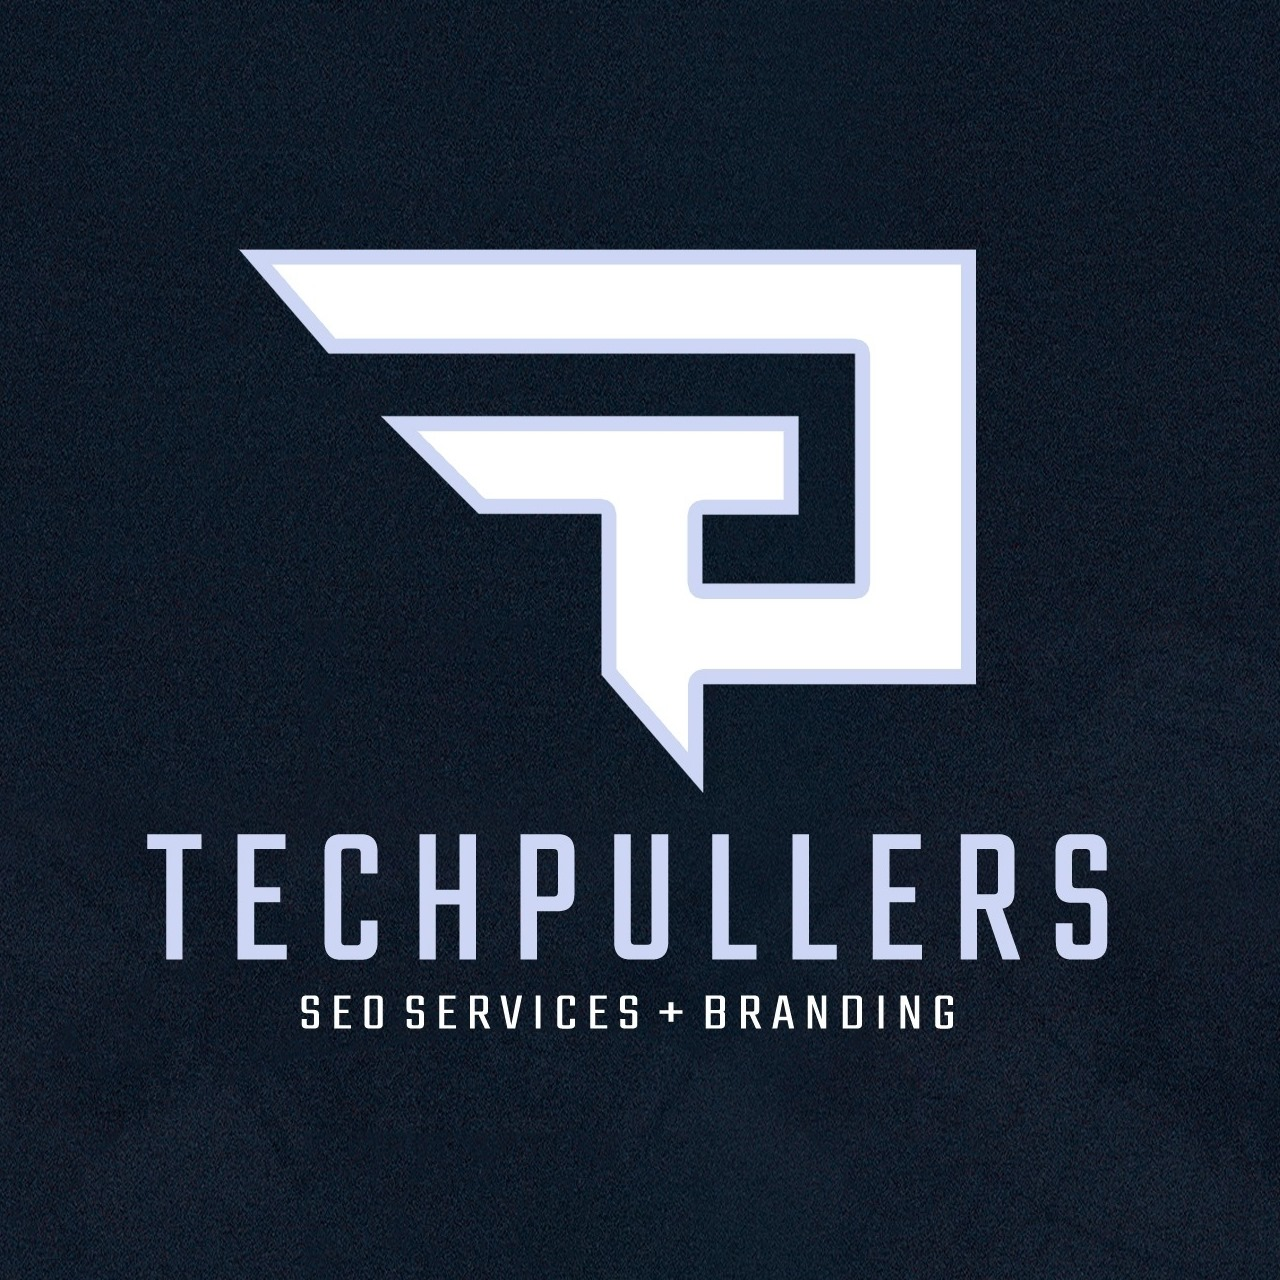 Techpullers Technology Solutions Private Limited